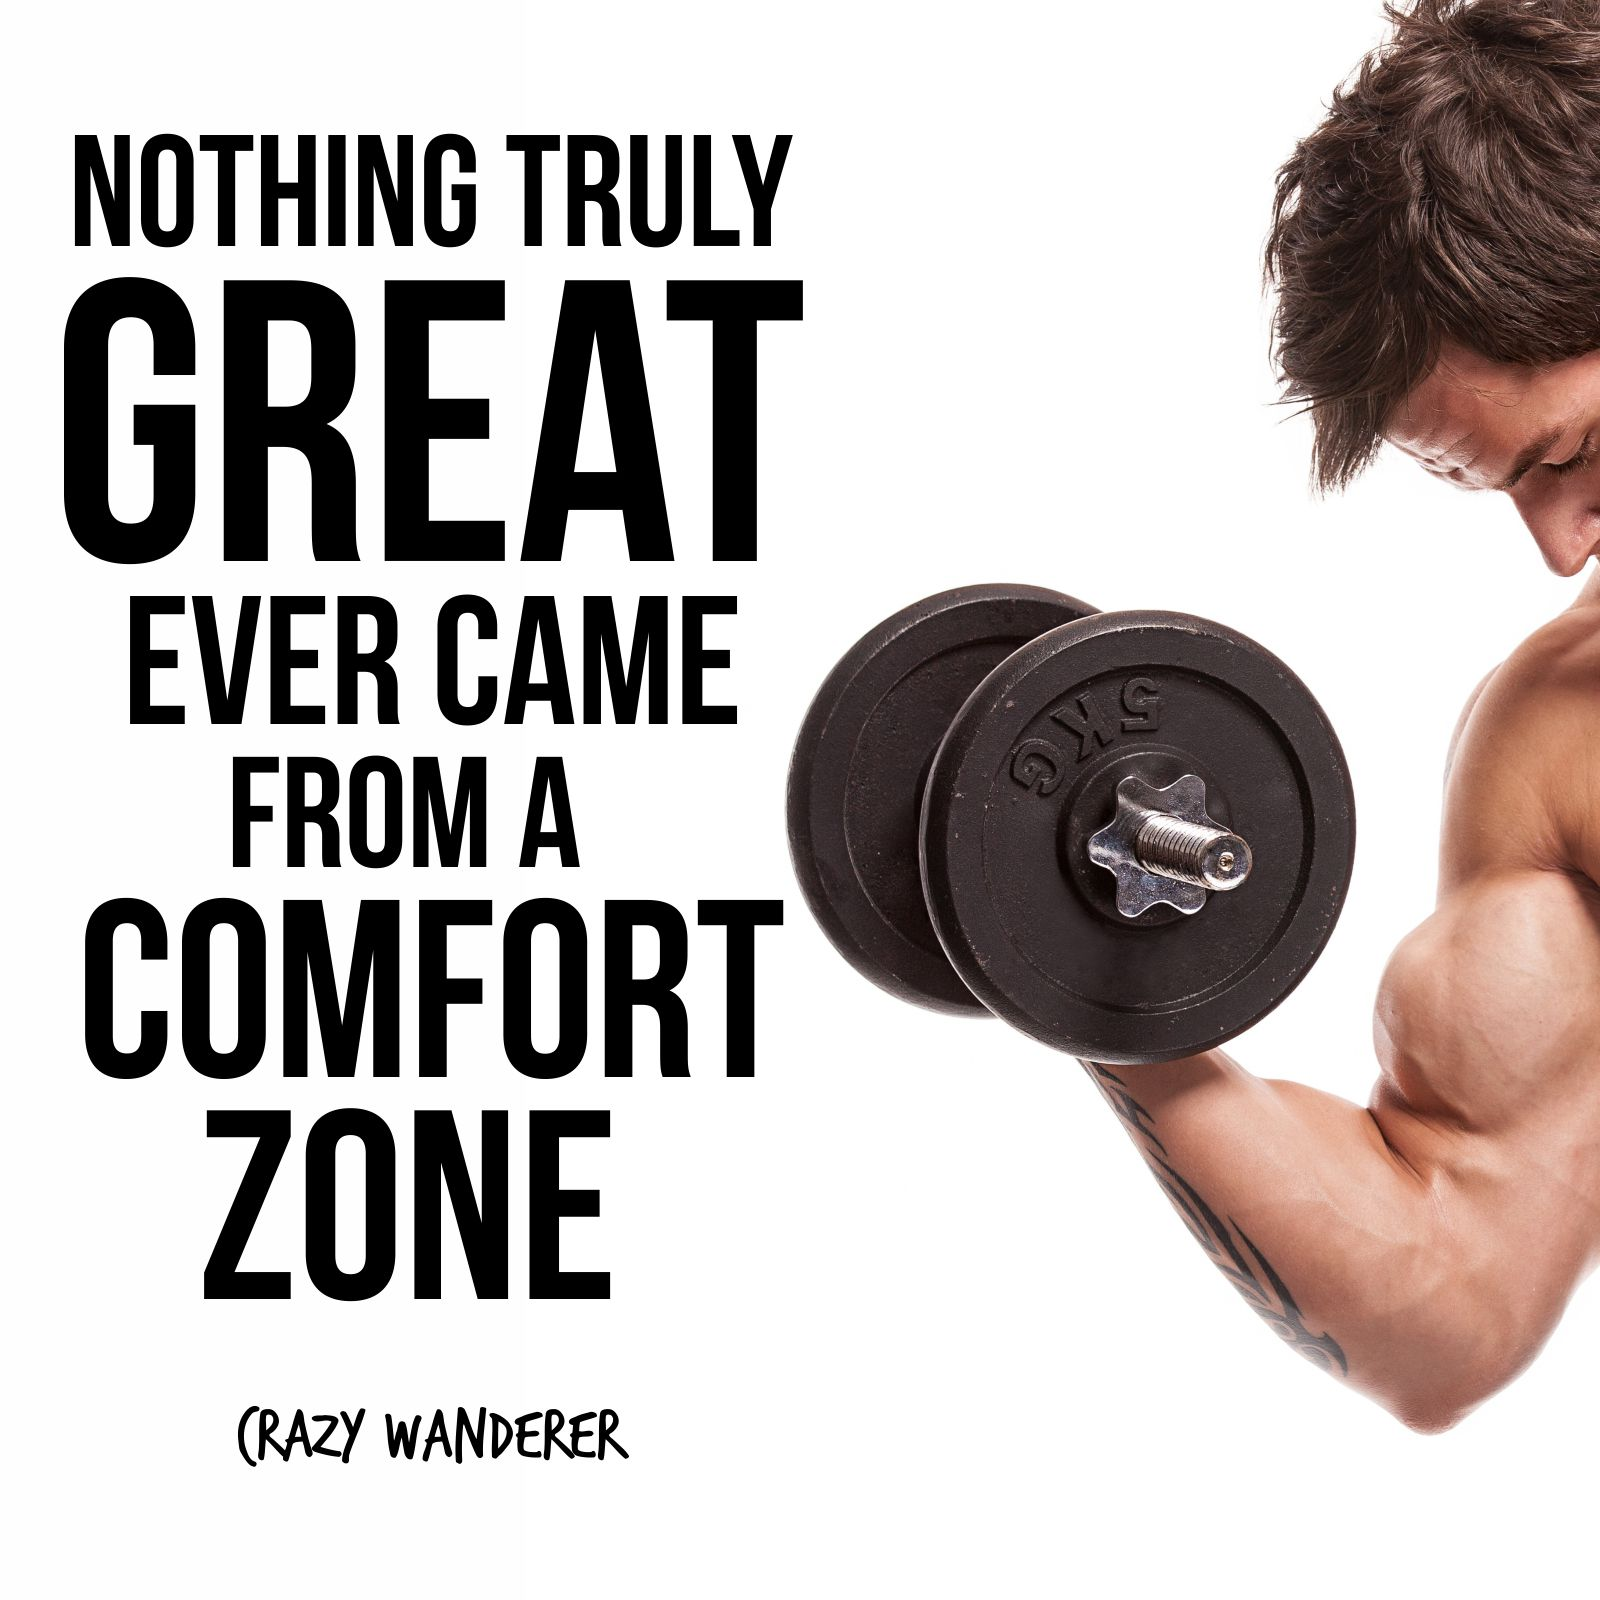 Fitness Quotes Best 5 Inspiration Quotes On Fitness  Fitnesswow